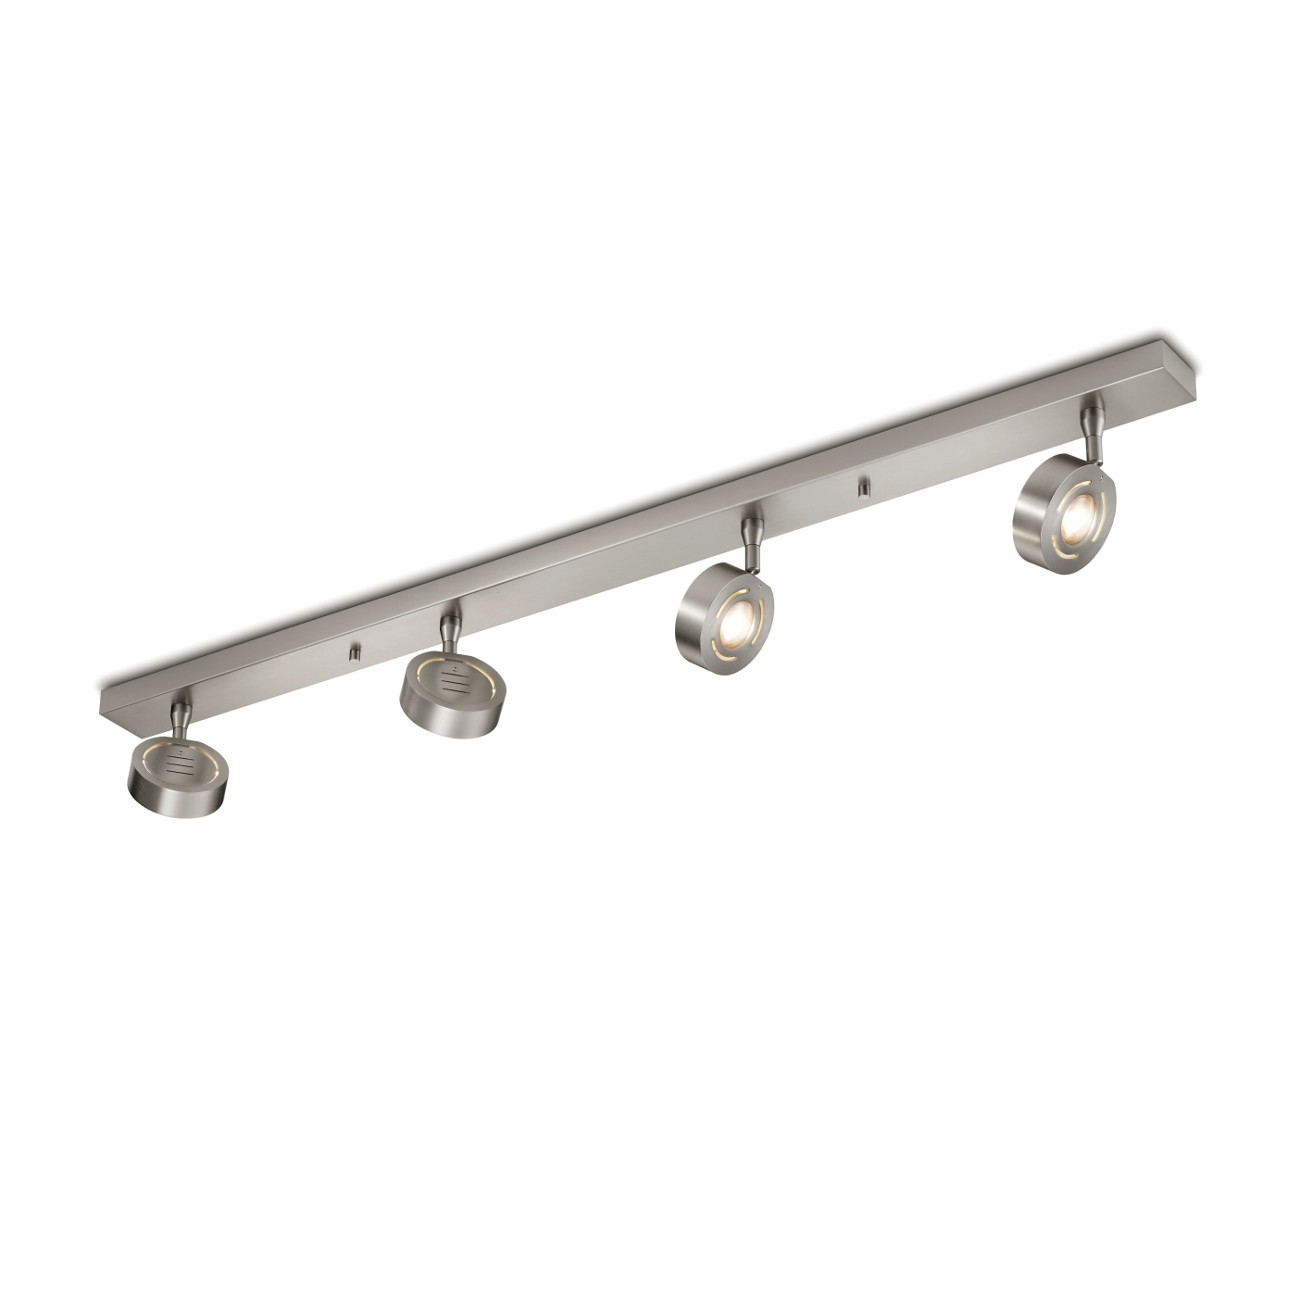 LED-Deckenstrahler 4-flammig, Nickel matt in modernem Design KNAPSTEIN 322